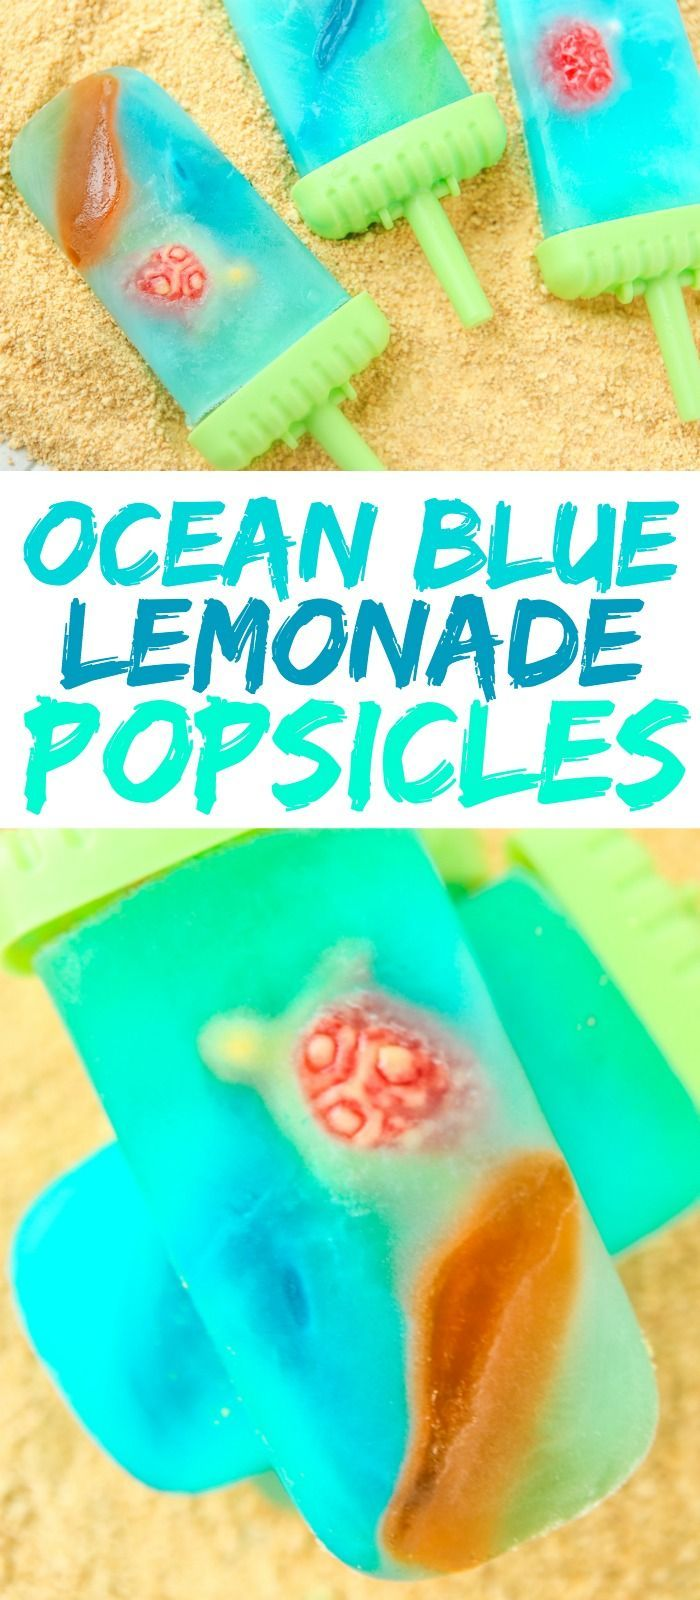 Have you ever seen those homemade popsicles with gummy bears? These ocean blue lemonade popsicles are like the beach and ocean version of those! These DIY popsicles may not be healthy but they're sure easy, delicious, and perfect for kids or for toddlers! And if you want to make them a little healthier this summer, you could always add a little fresh fruit with the gummy sharks and turtles!